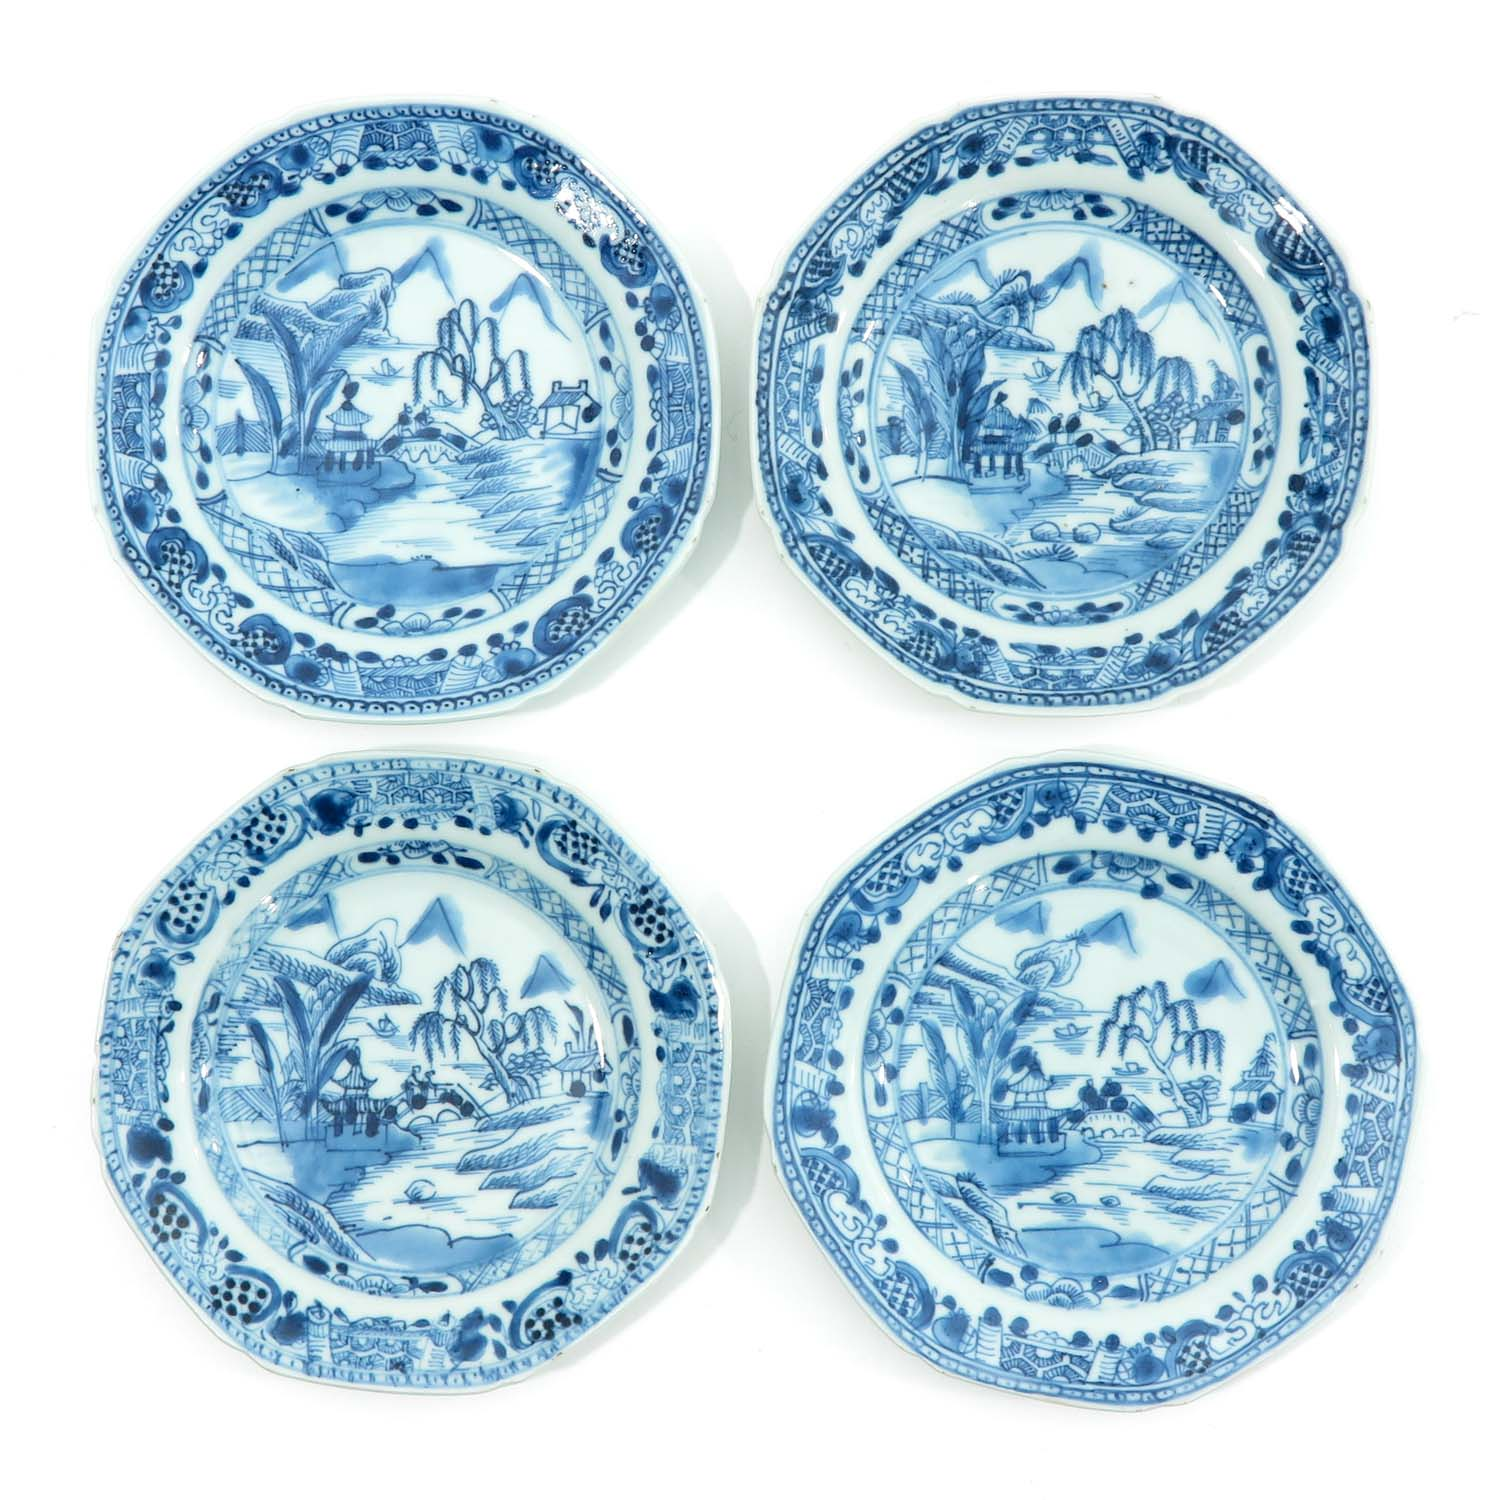 A Series of 8 Blue and White Plates - Image 3 of 9